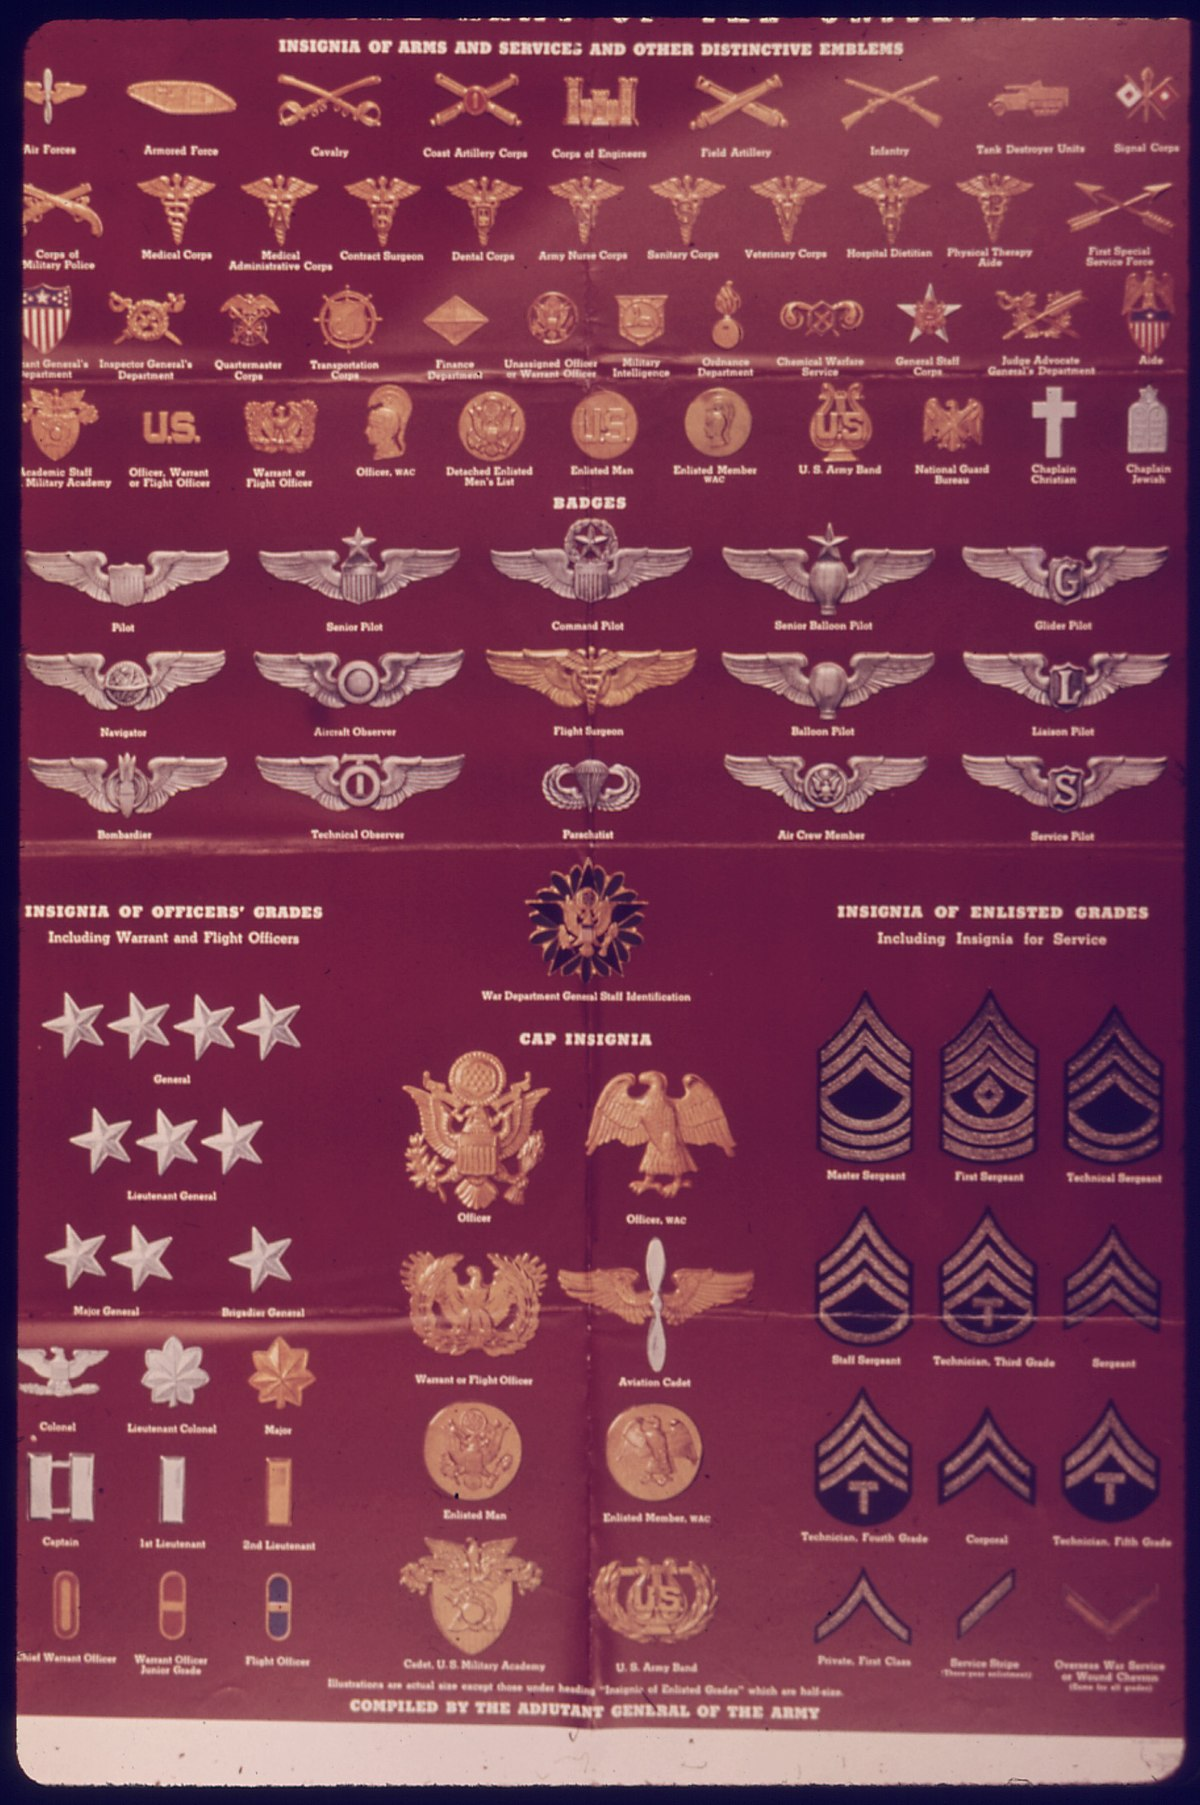 Us Air Force Medals And Ribbons Chart